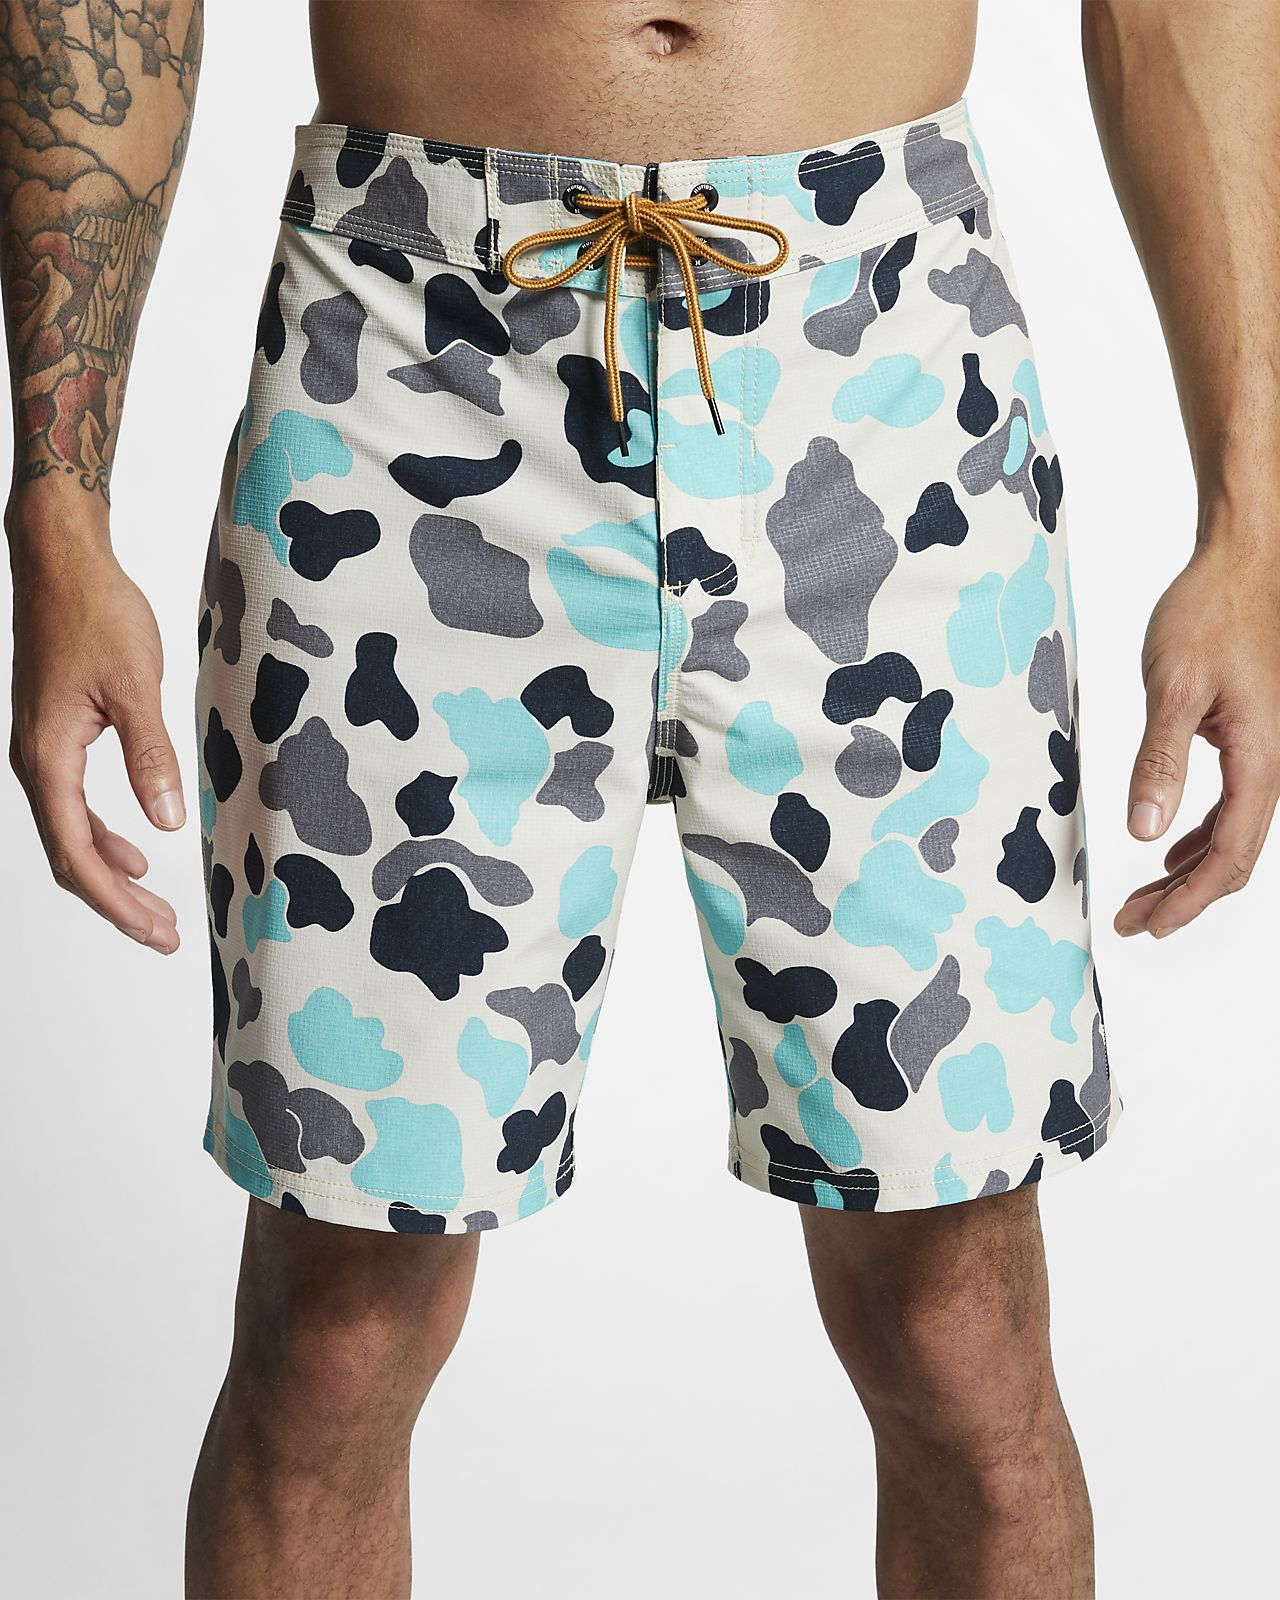 Boardshort Hurley x Carhartt 46 cm pour Homme